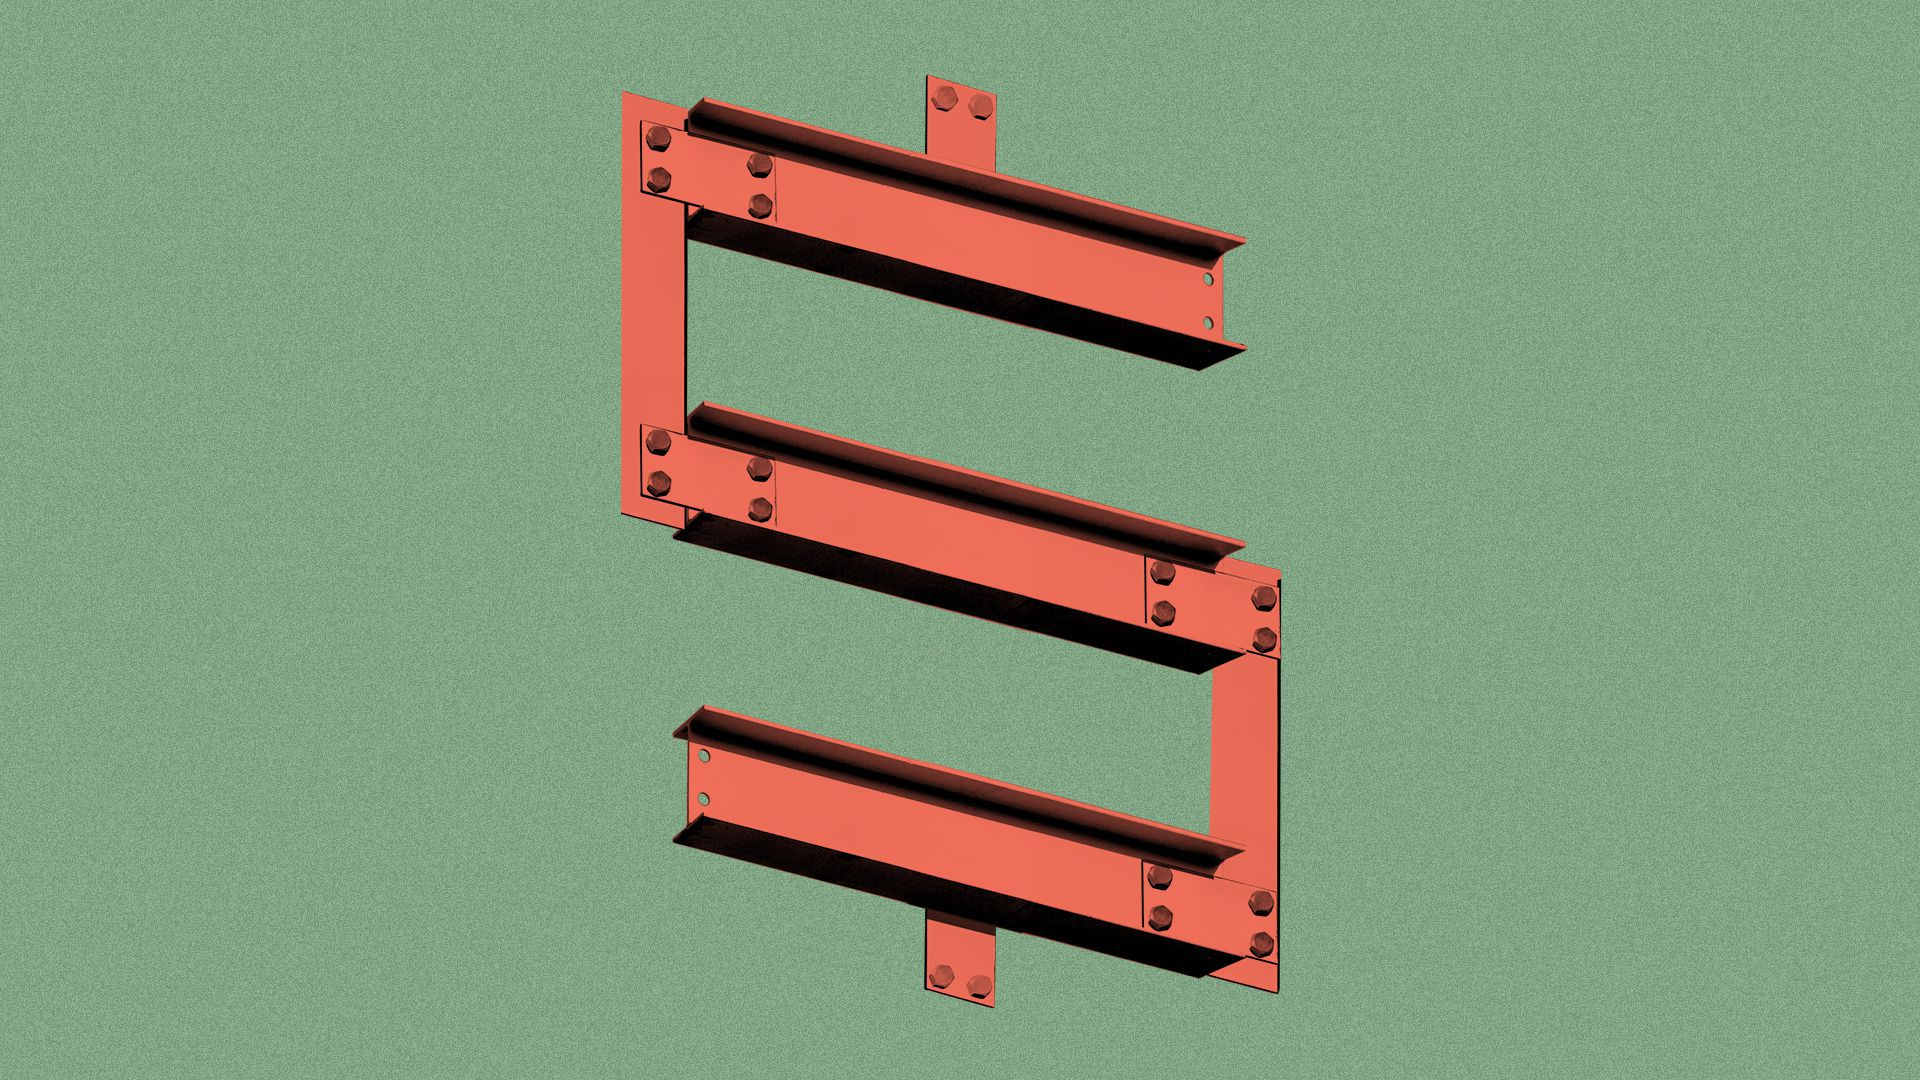 Illustration of a dollar sign made out of girders.